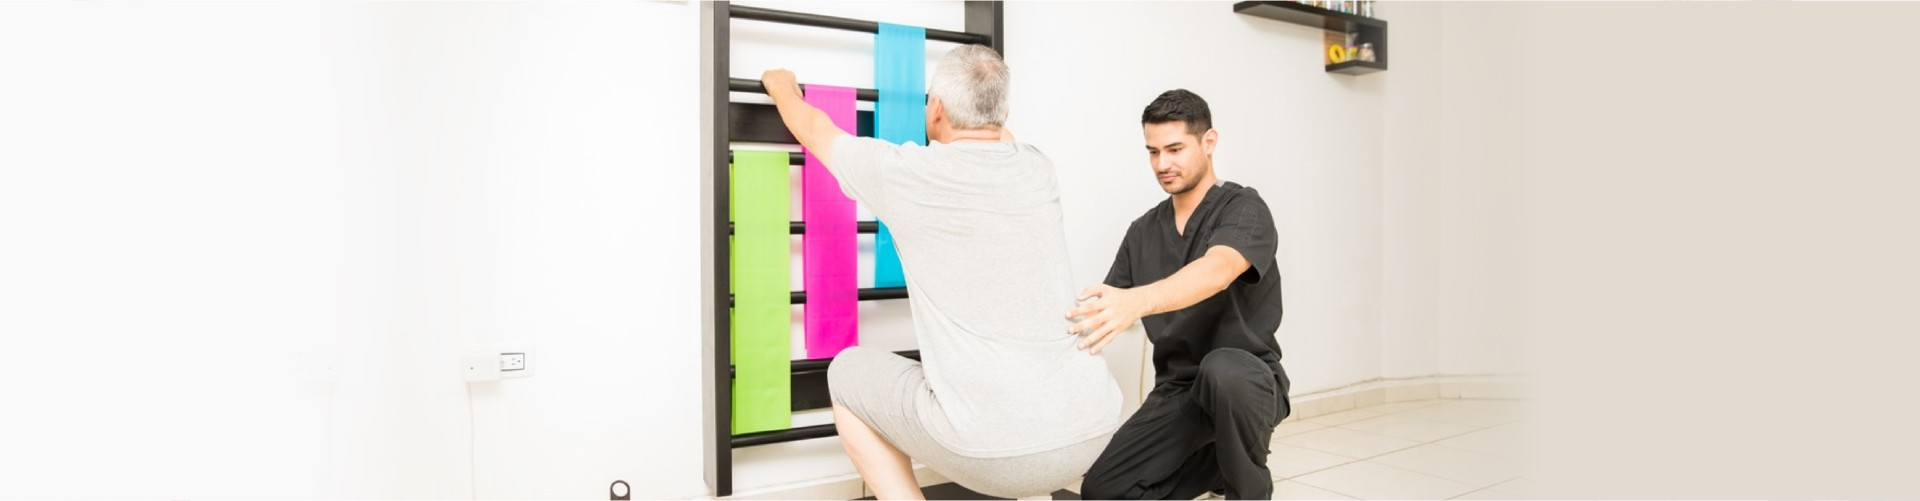 Young physical therapist assisting mature men doing squats in clinic